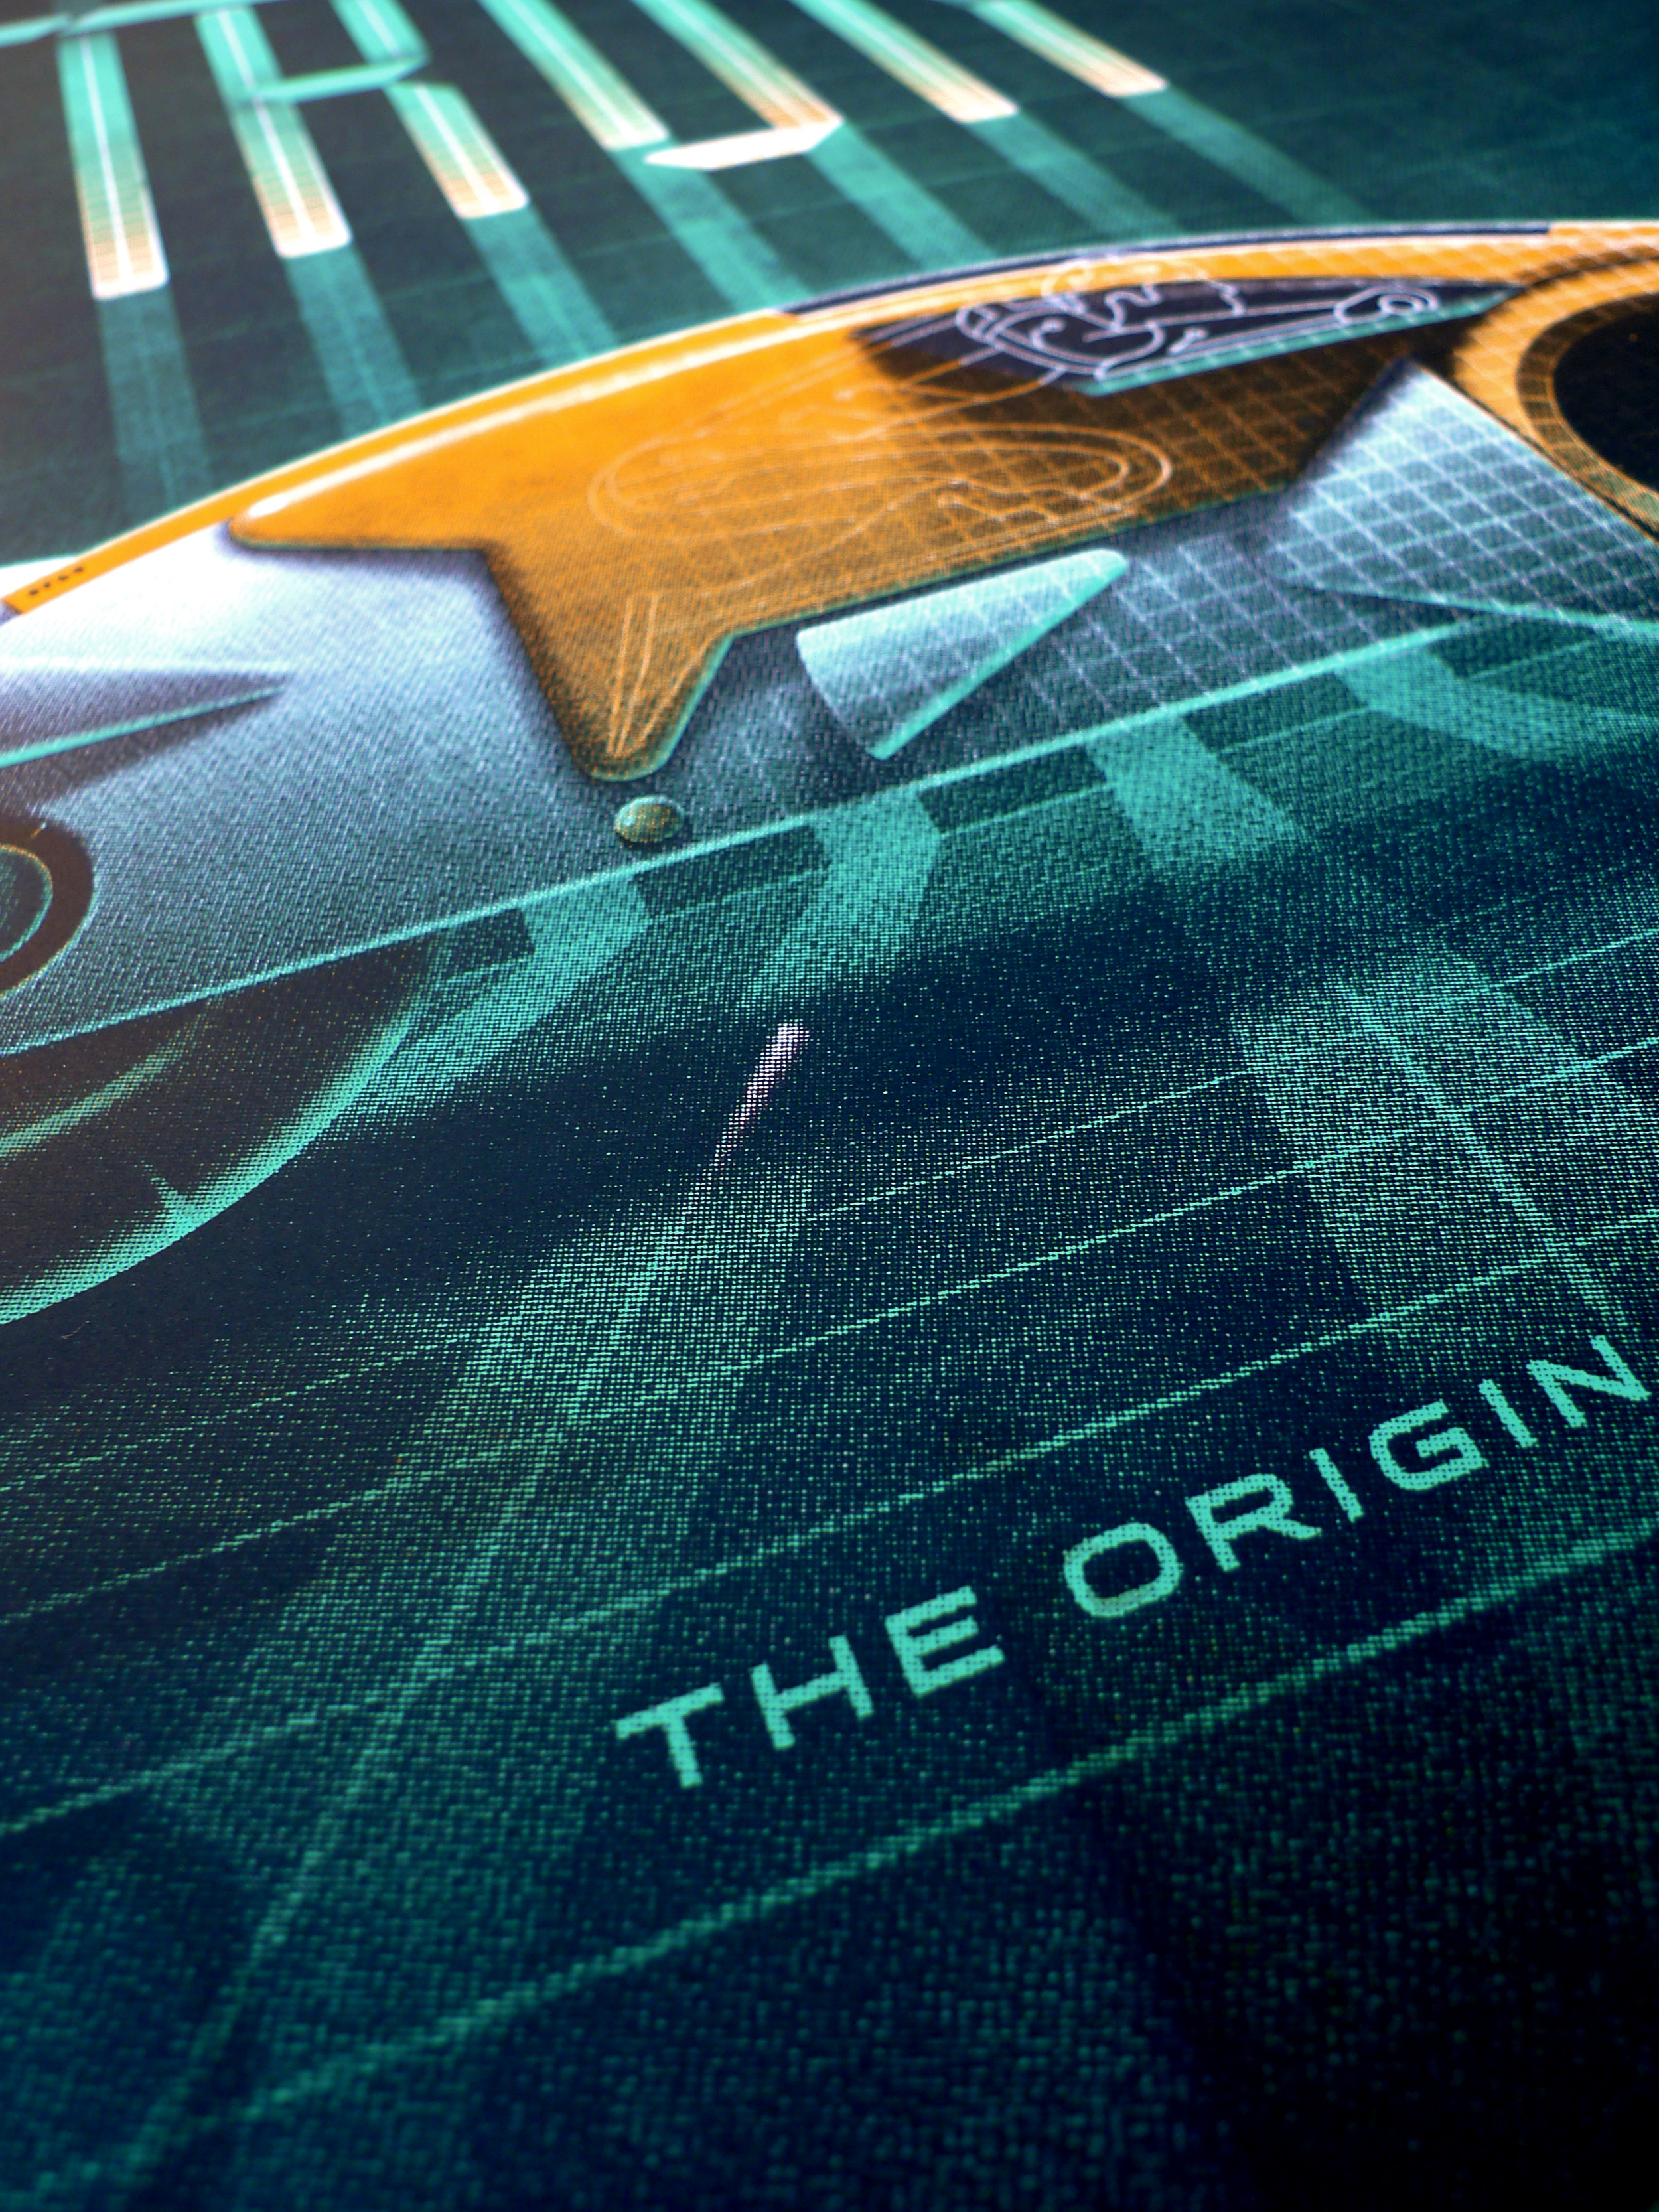 Tron: The Original Classic Poster by DKNG